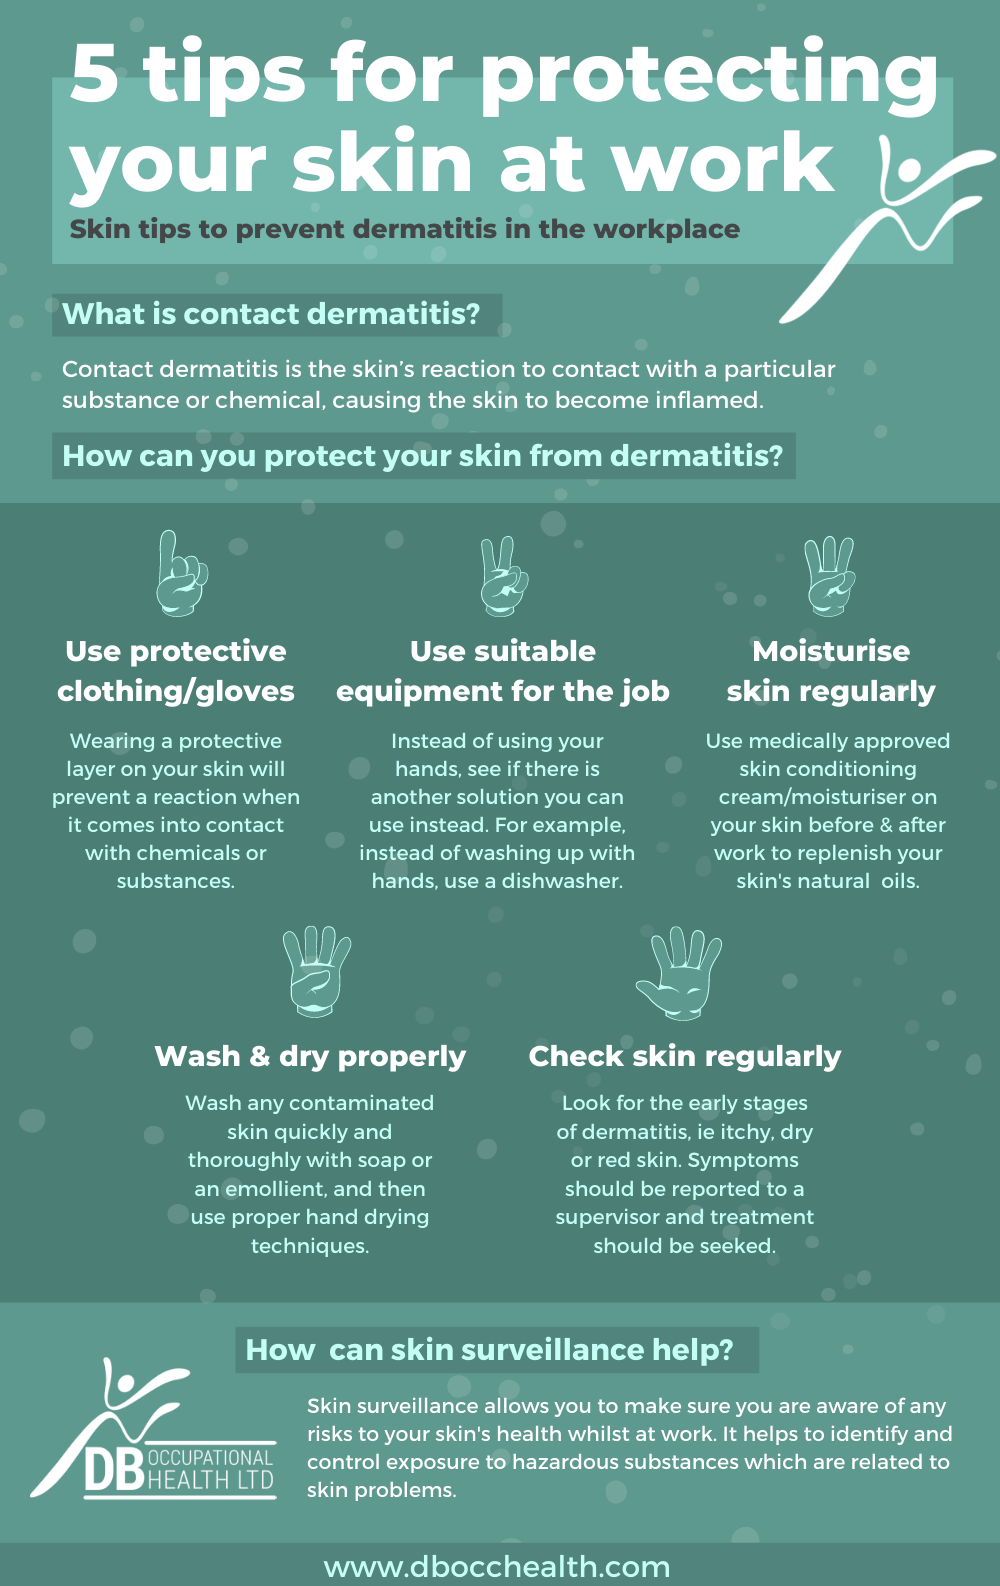 dermatitis tips for workplace infographic